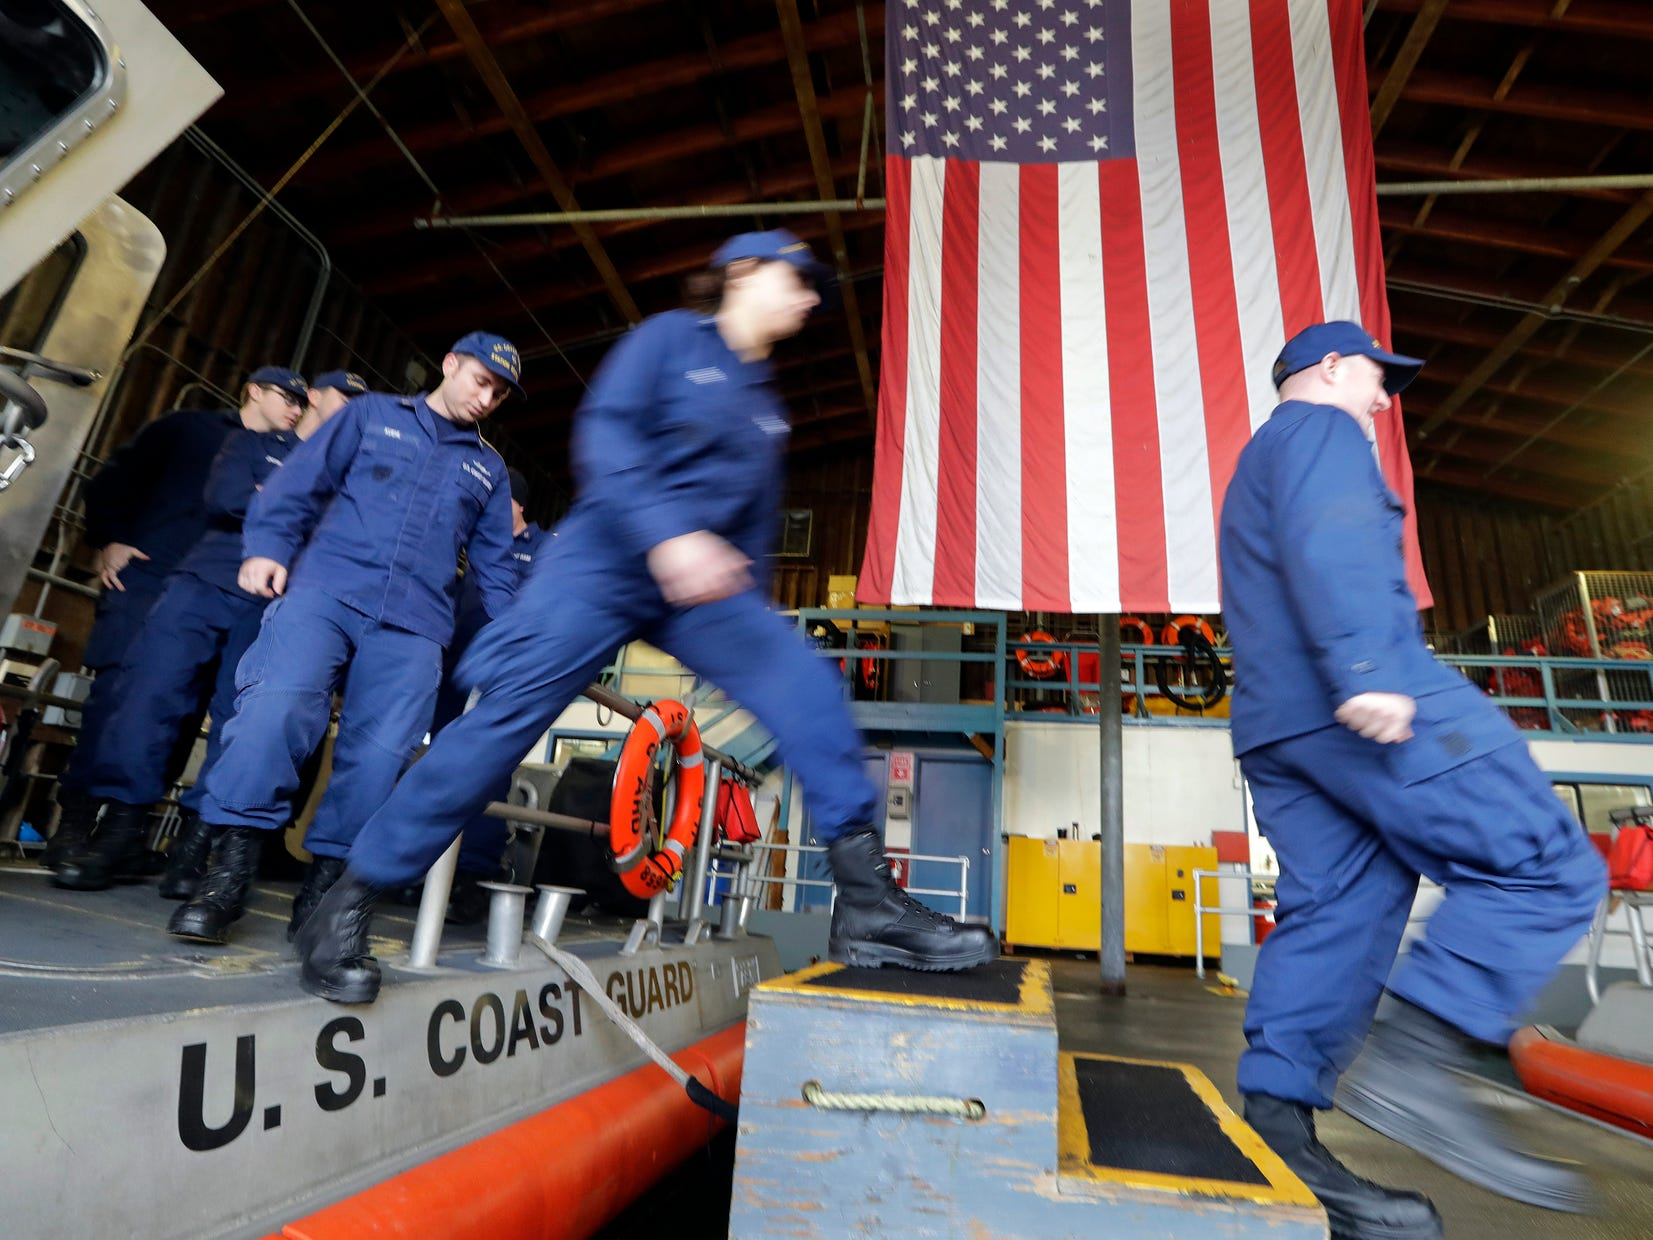 FILE In this Wednesday, Jan 16, 2019, file photo, U.S. Coast Guardsmen and women, who missed their first paycheck a day earlier during the partial government shutdown, walk off a 45-foot response boat during their shift at Sector Puget Sound base in Seattle. San Antonio-based USAA, a military personnel insurer and financial services company, said Wednesday they has donated $15 million for interest-free loans to Coast Guard members during the partial U.S. government shutdown. The funds will be disbursed by Coast Guard Mutual Assistance. The American Red Cross Hero Care Center will assist. (AP Photo/Elaine Thompson, File) ORG XMIT: CER303